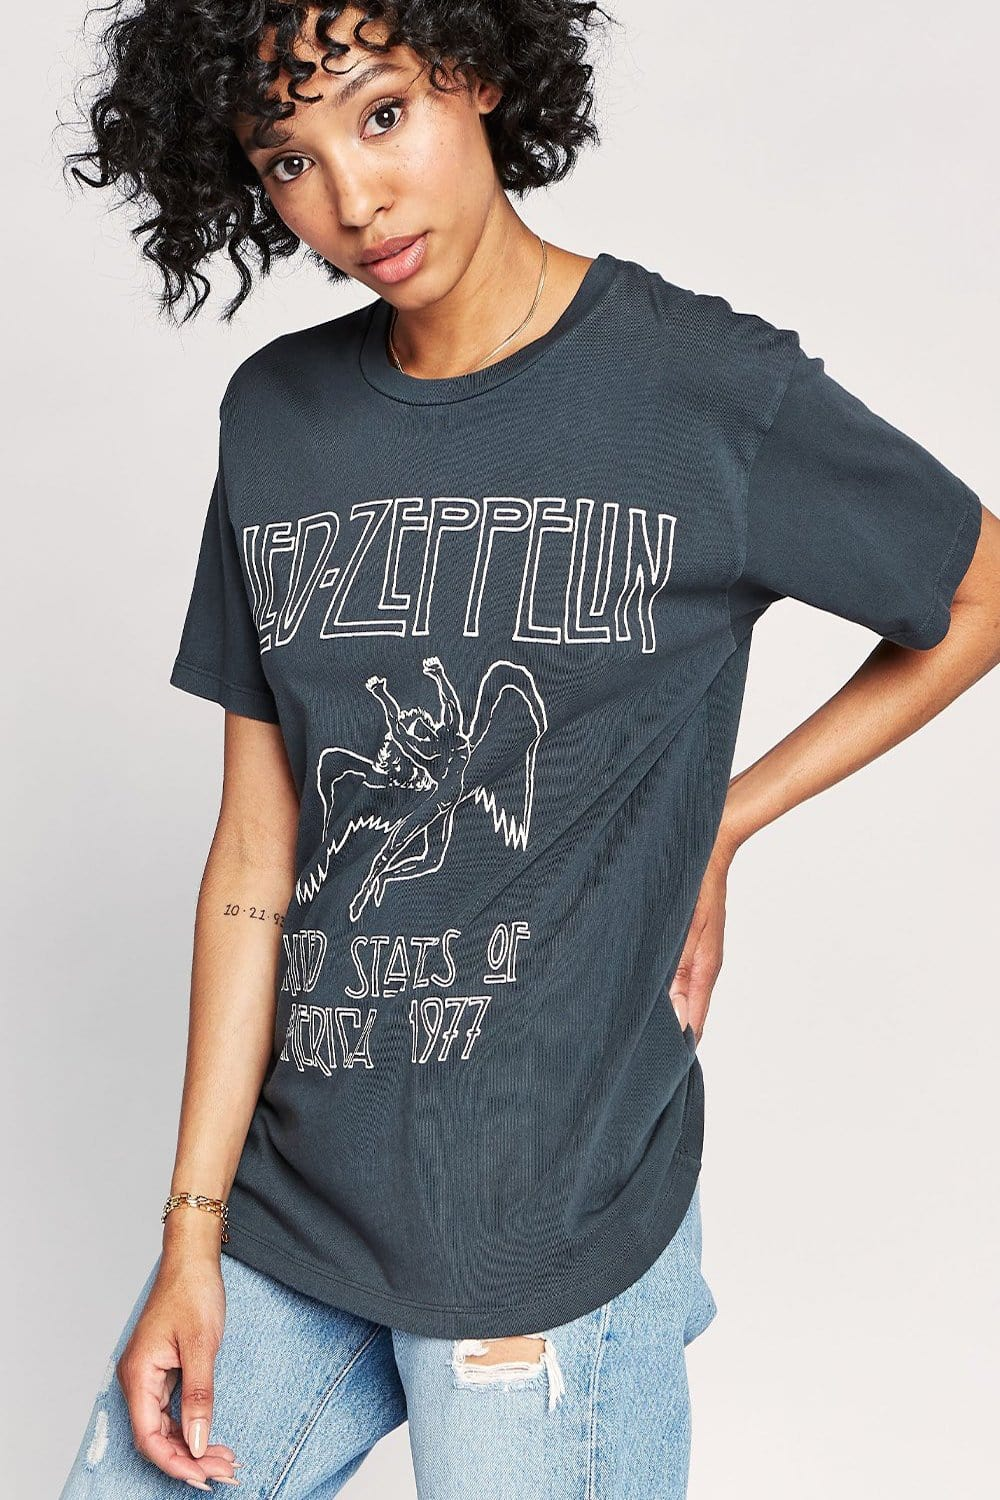 Led Zeppelin 1977 Weekend Tee